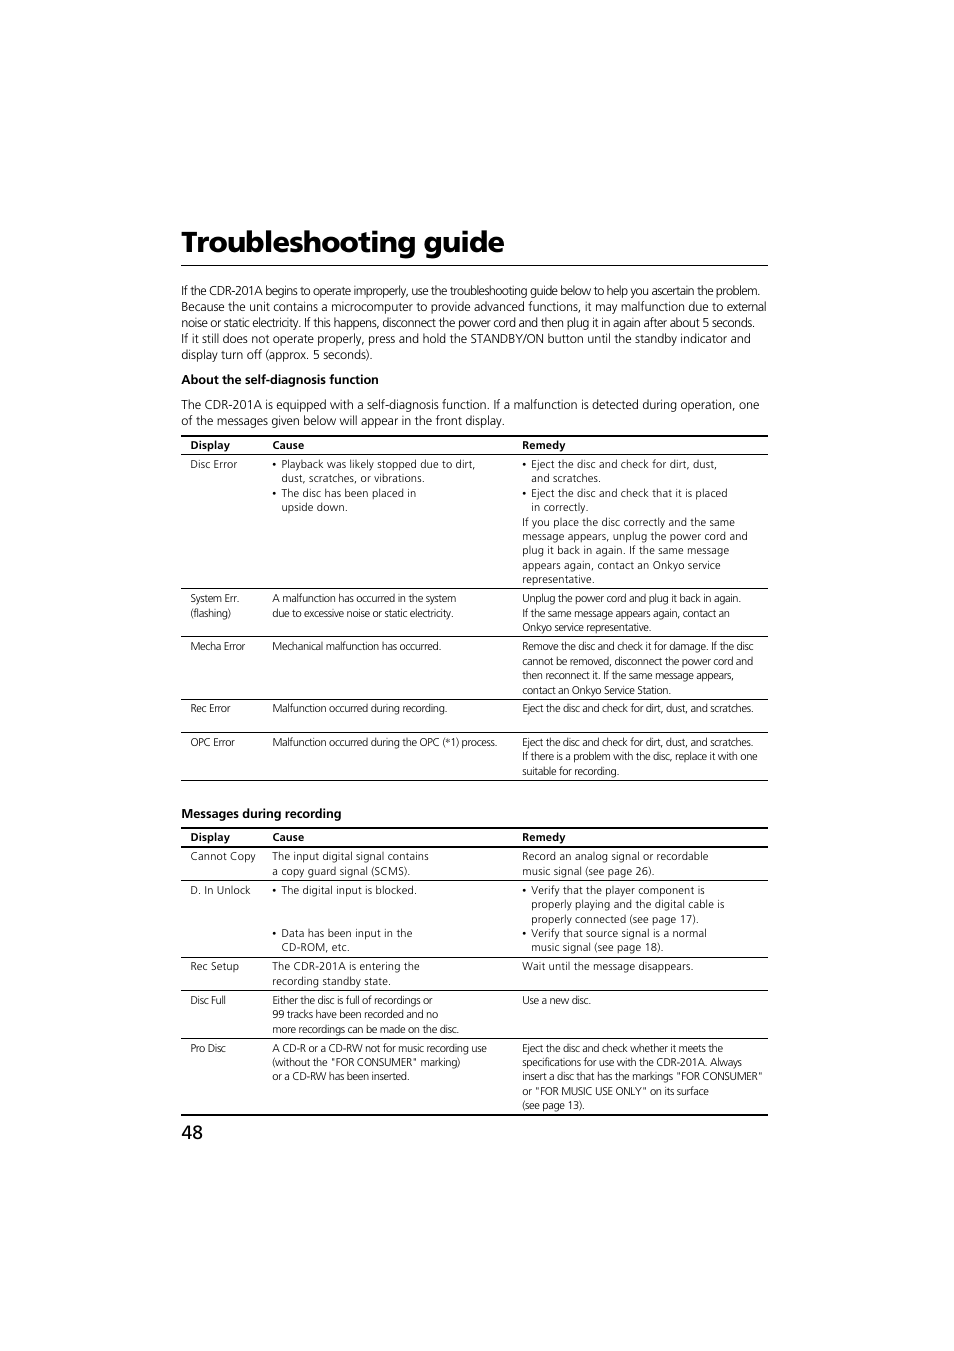 Troubleshooting guide | Onkyo CDR-201A User Manual | Page 48